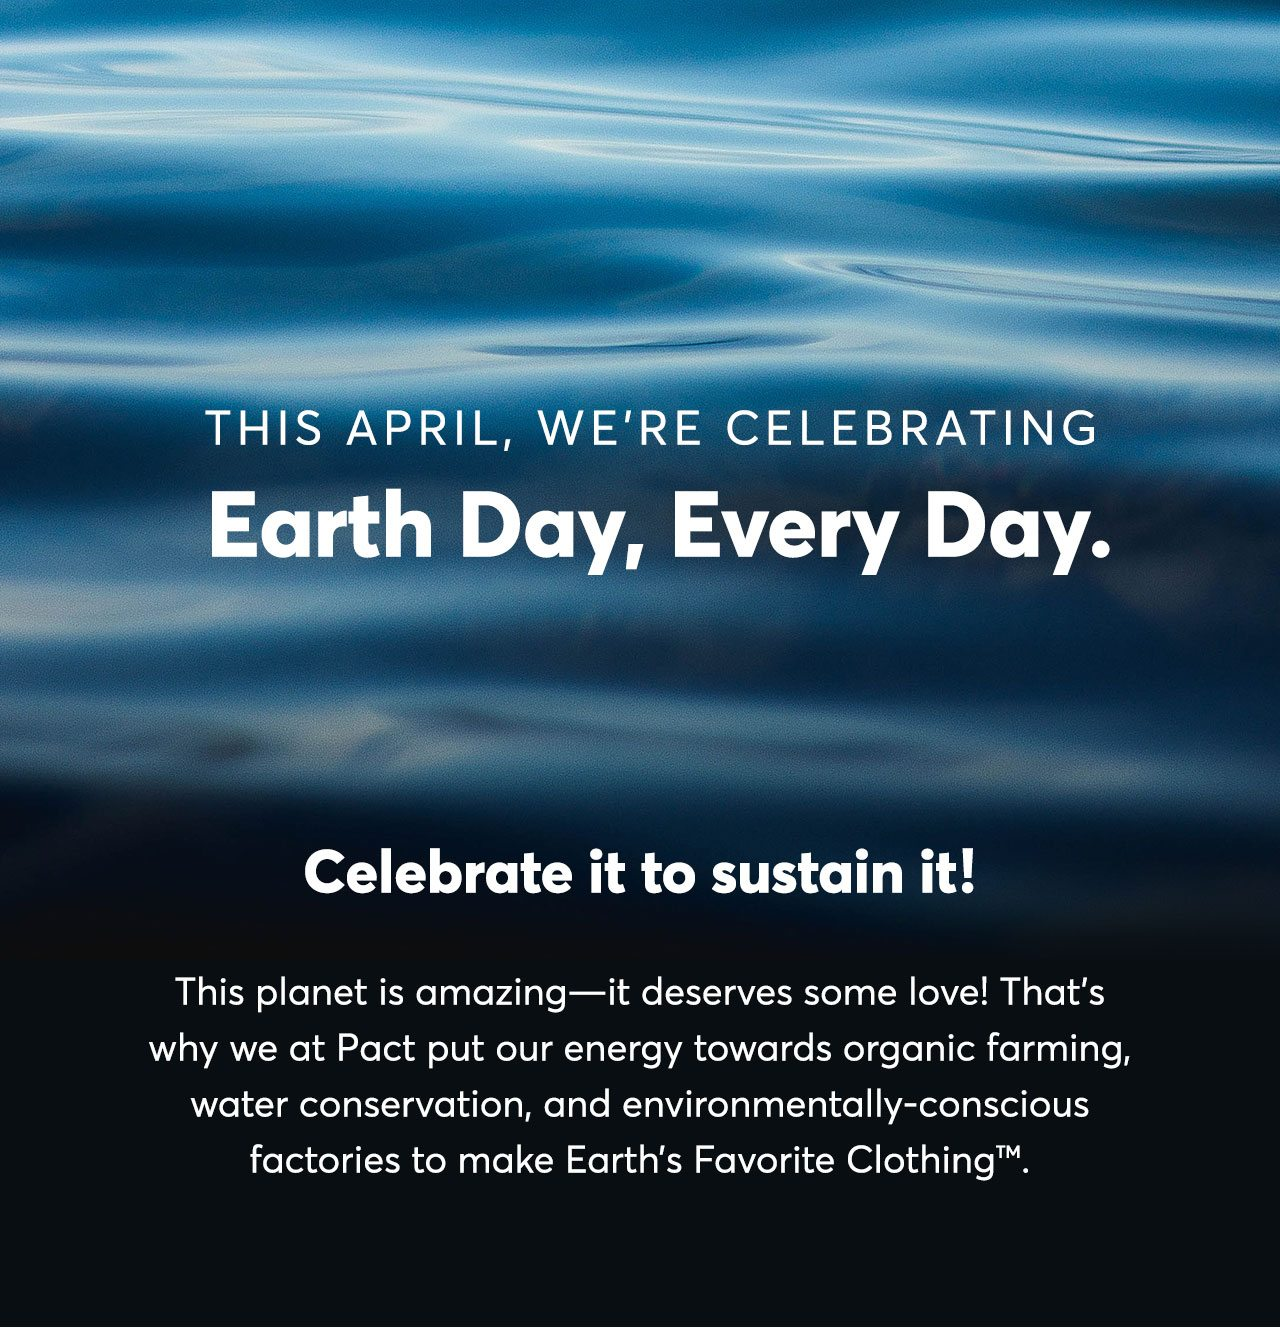 This April, we're celebrating Earth Day, Every Day.